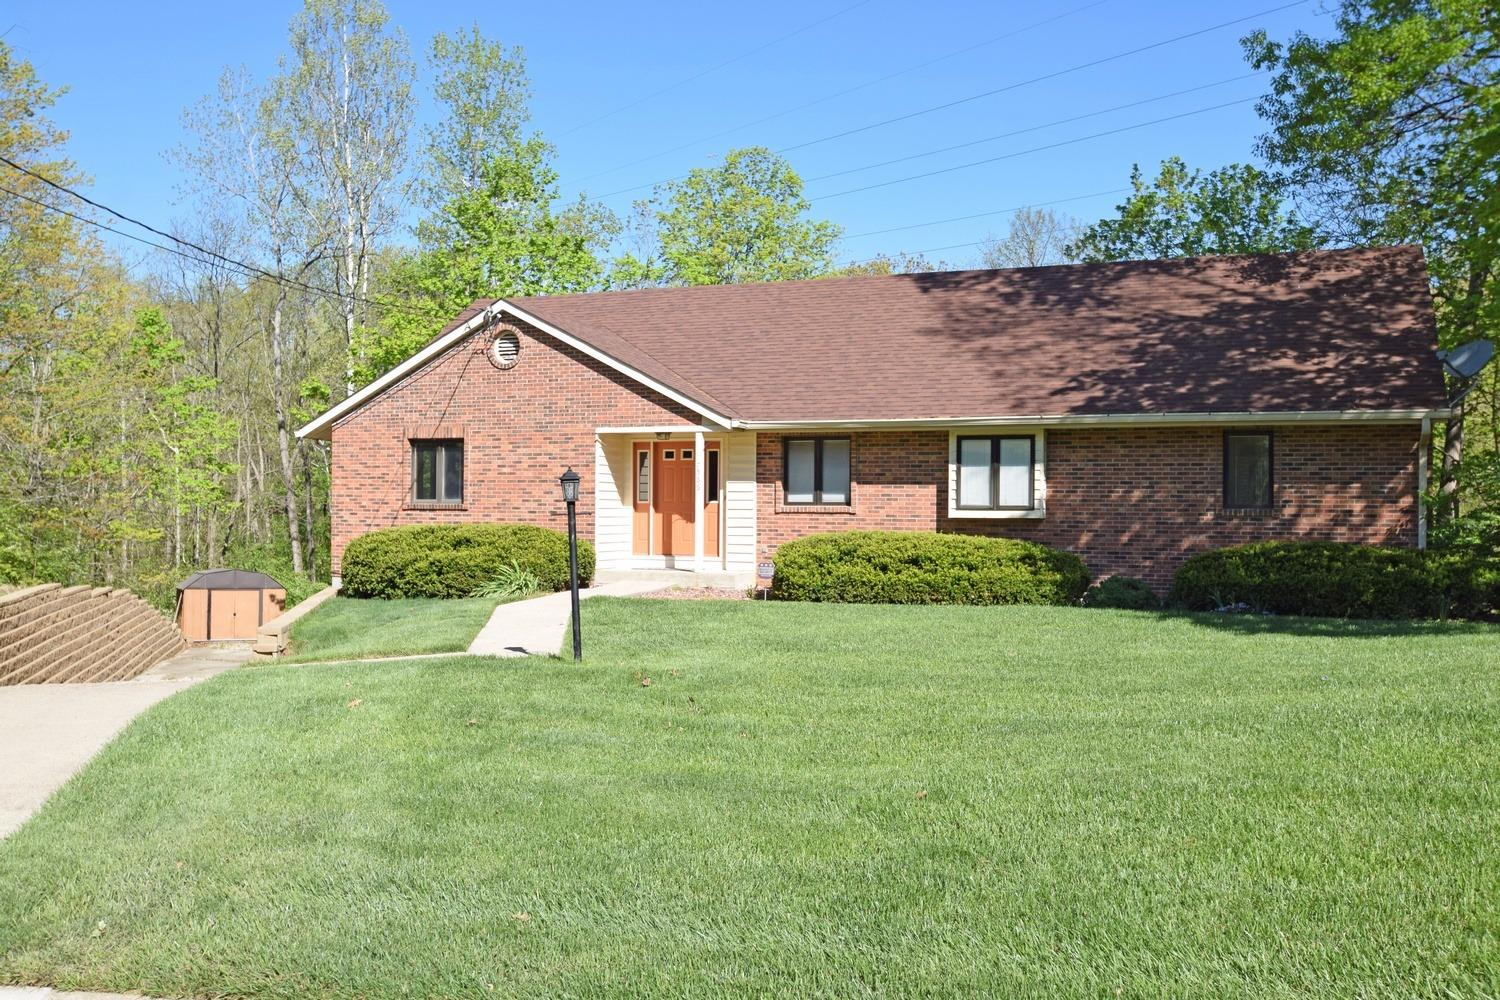 7566 Windy Knoll Drive, West Chester, OH 45241